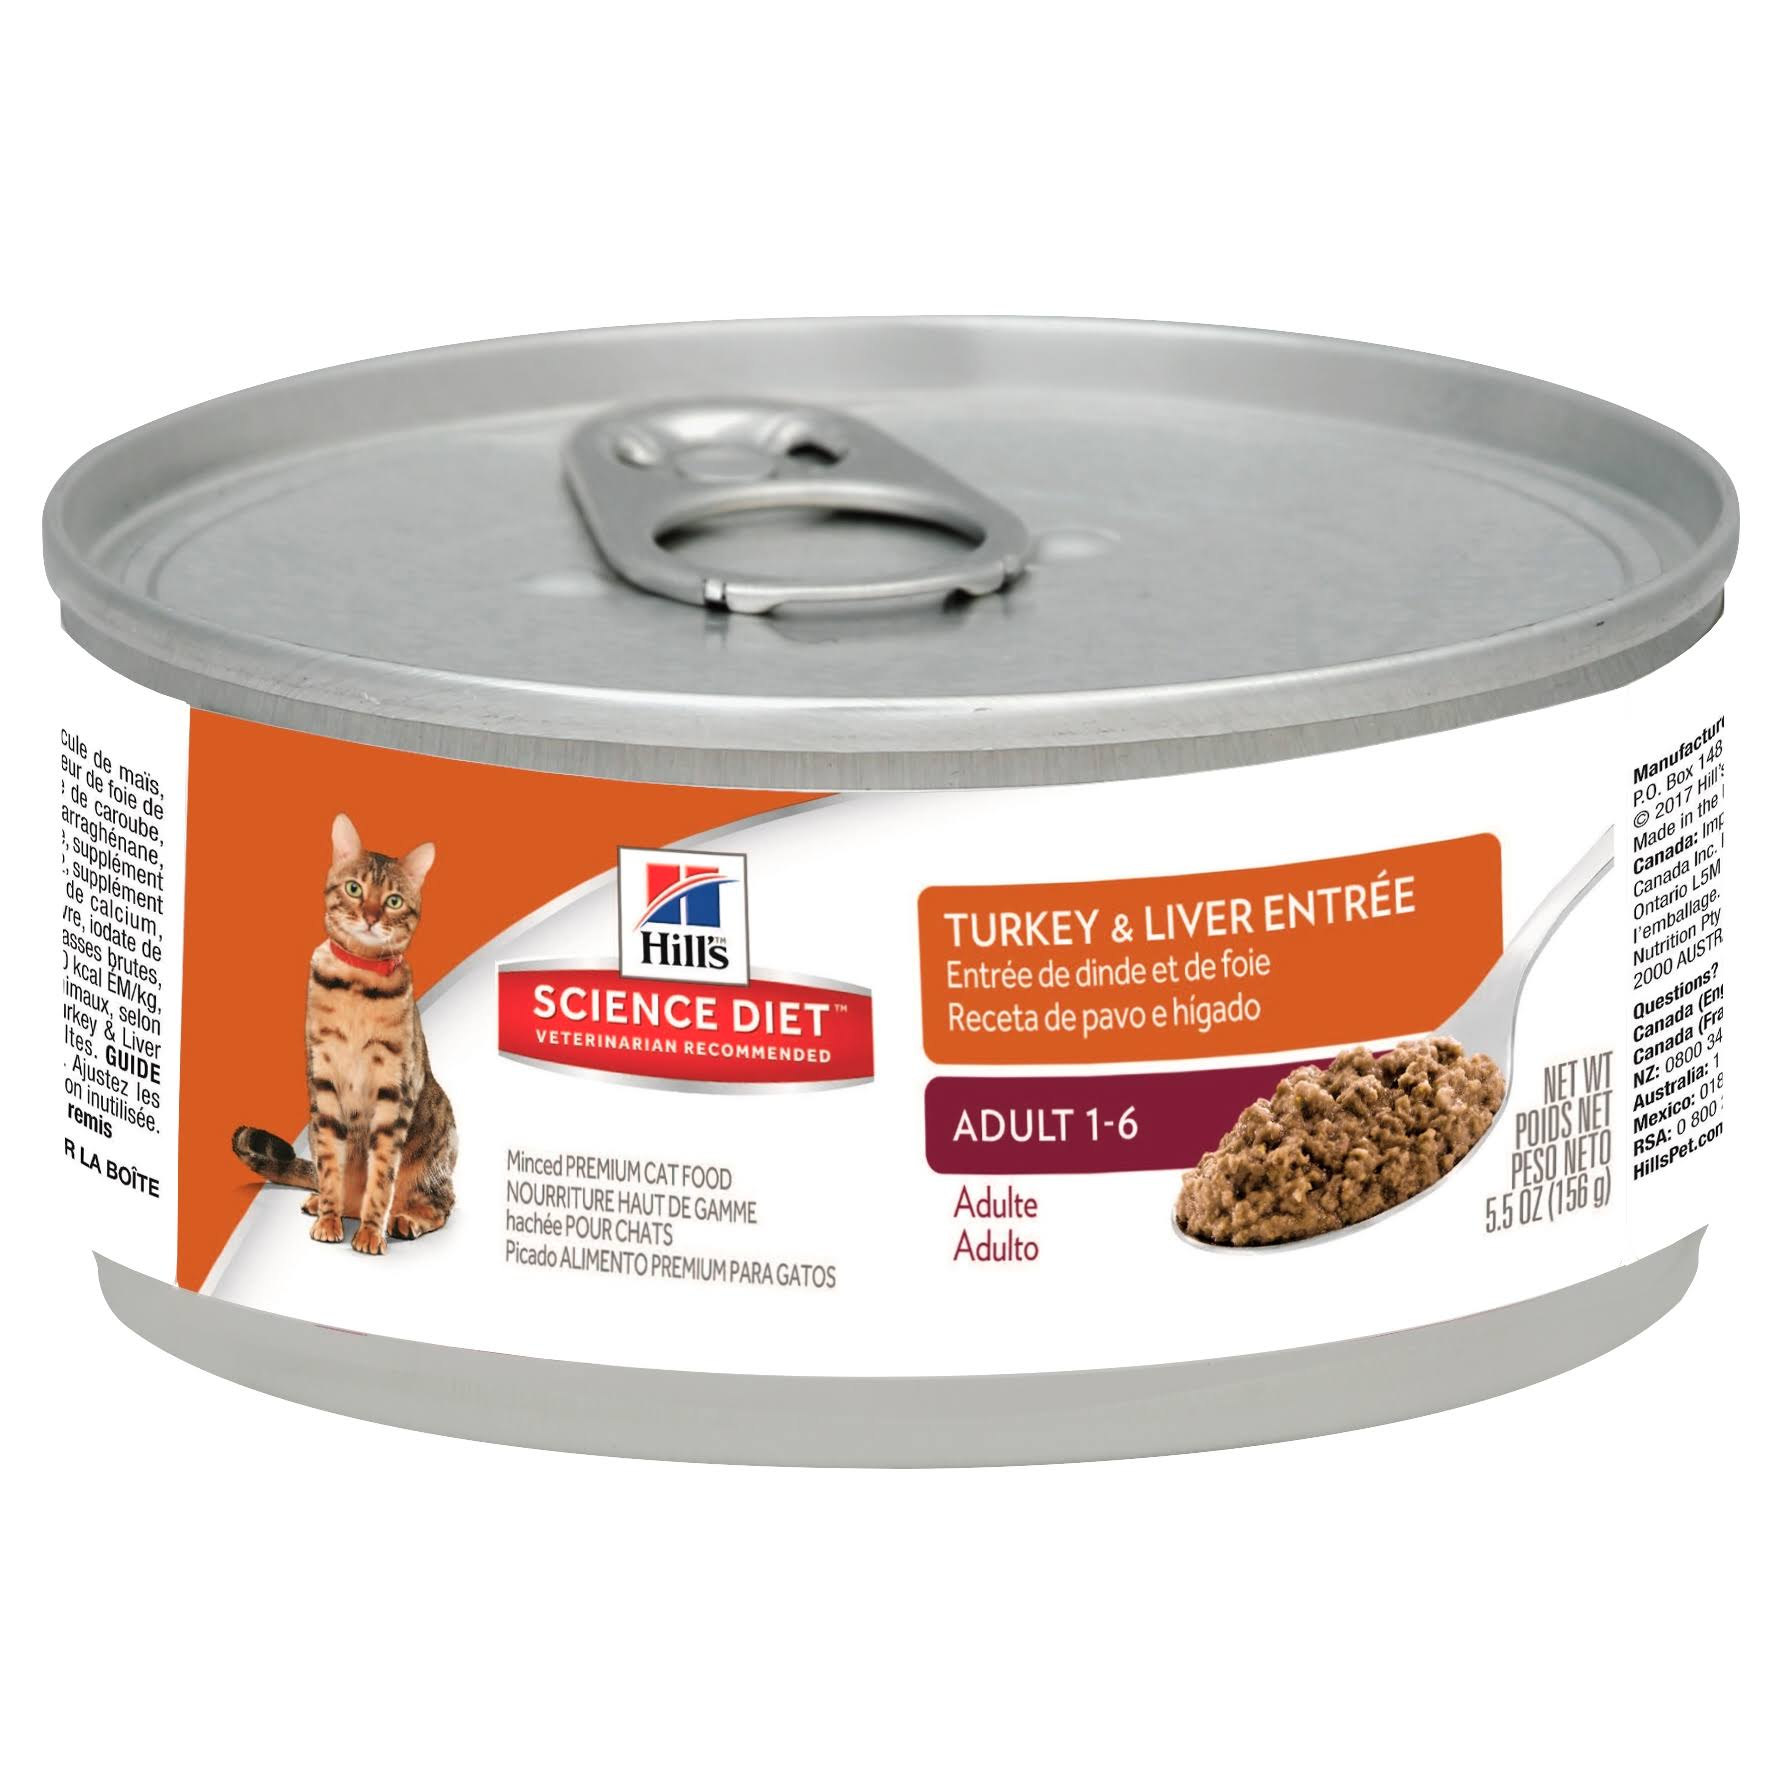 Hill's Science Diet Optimal Care Cat Food Minced - Turkey & Liver Entree